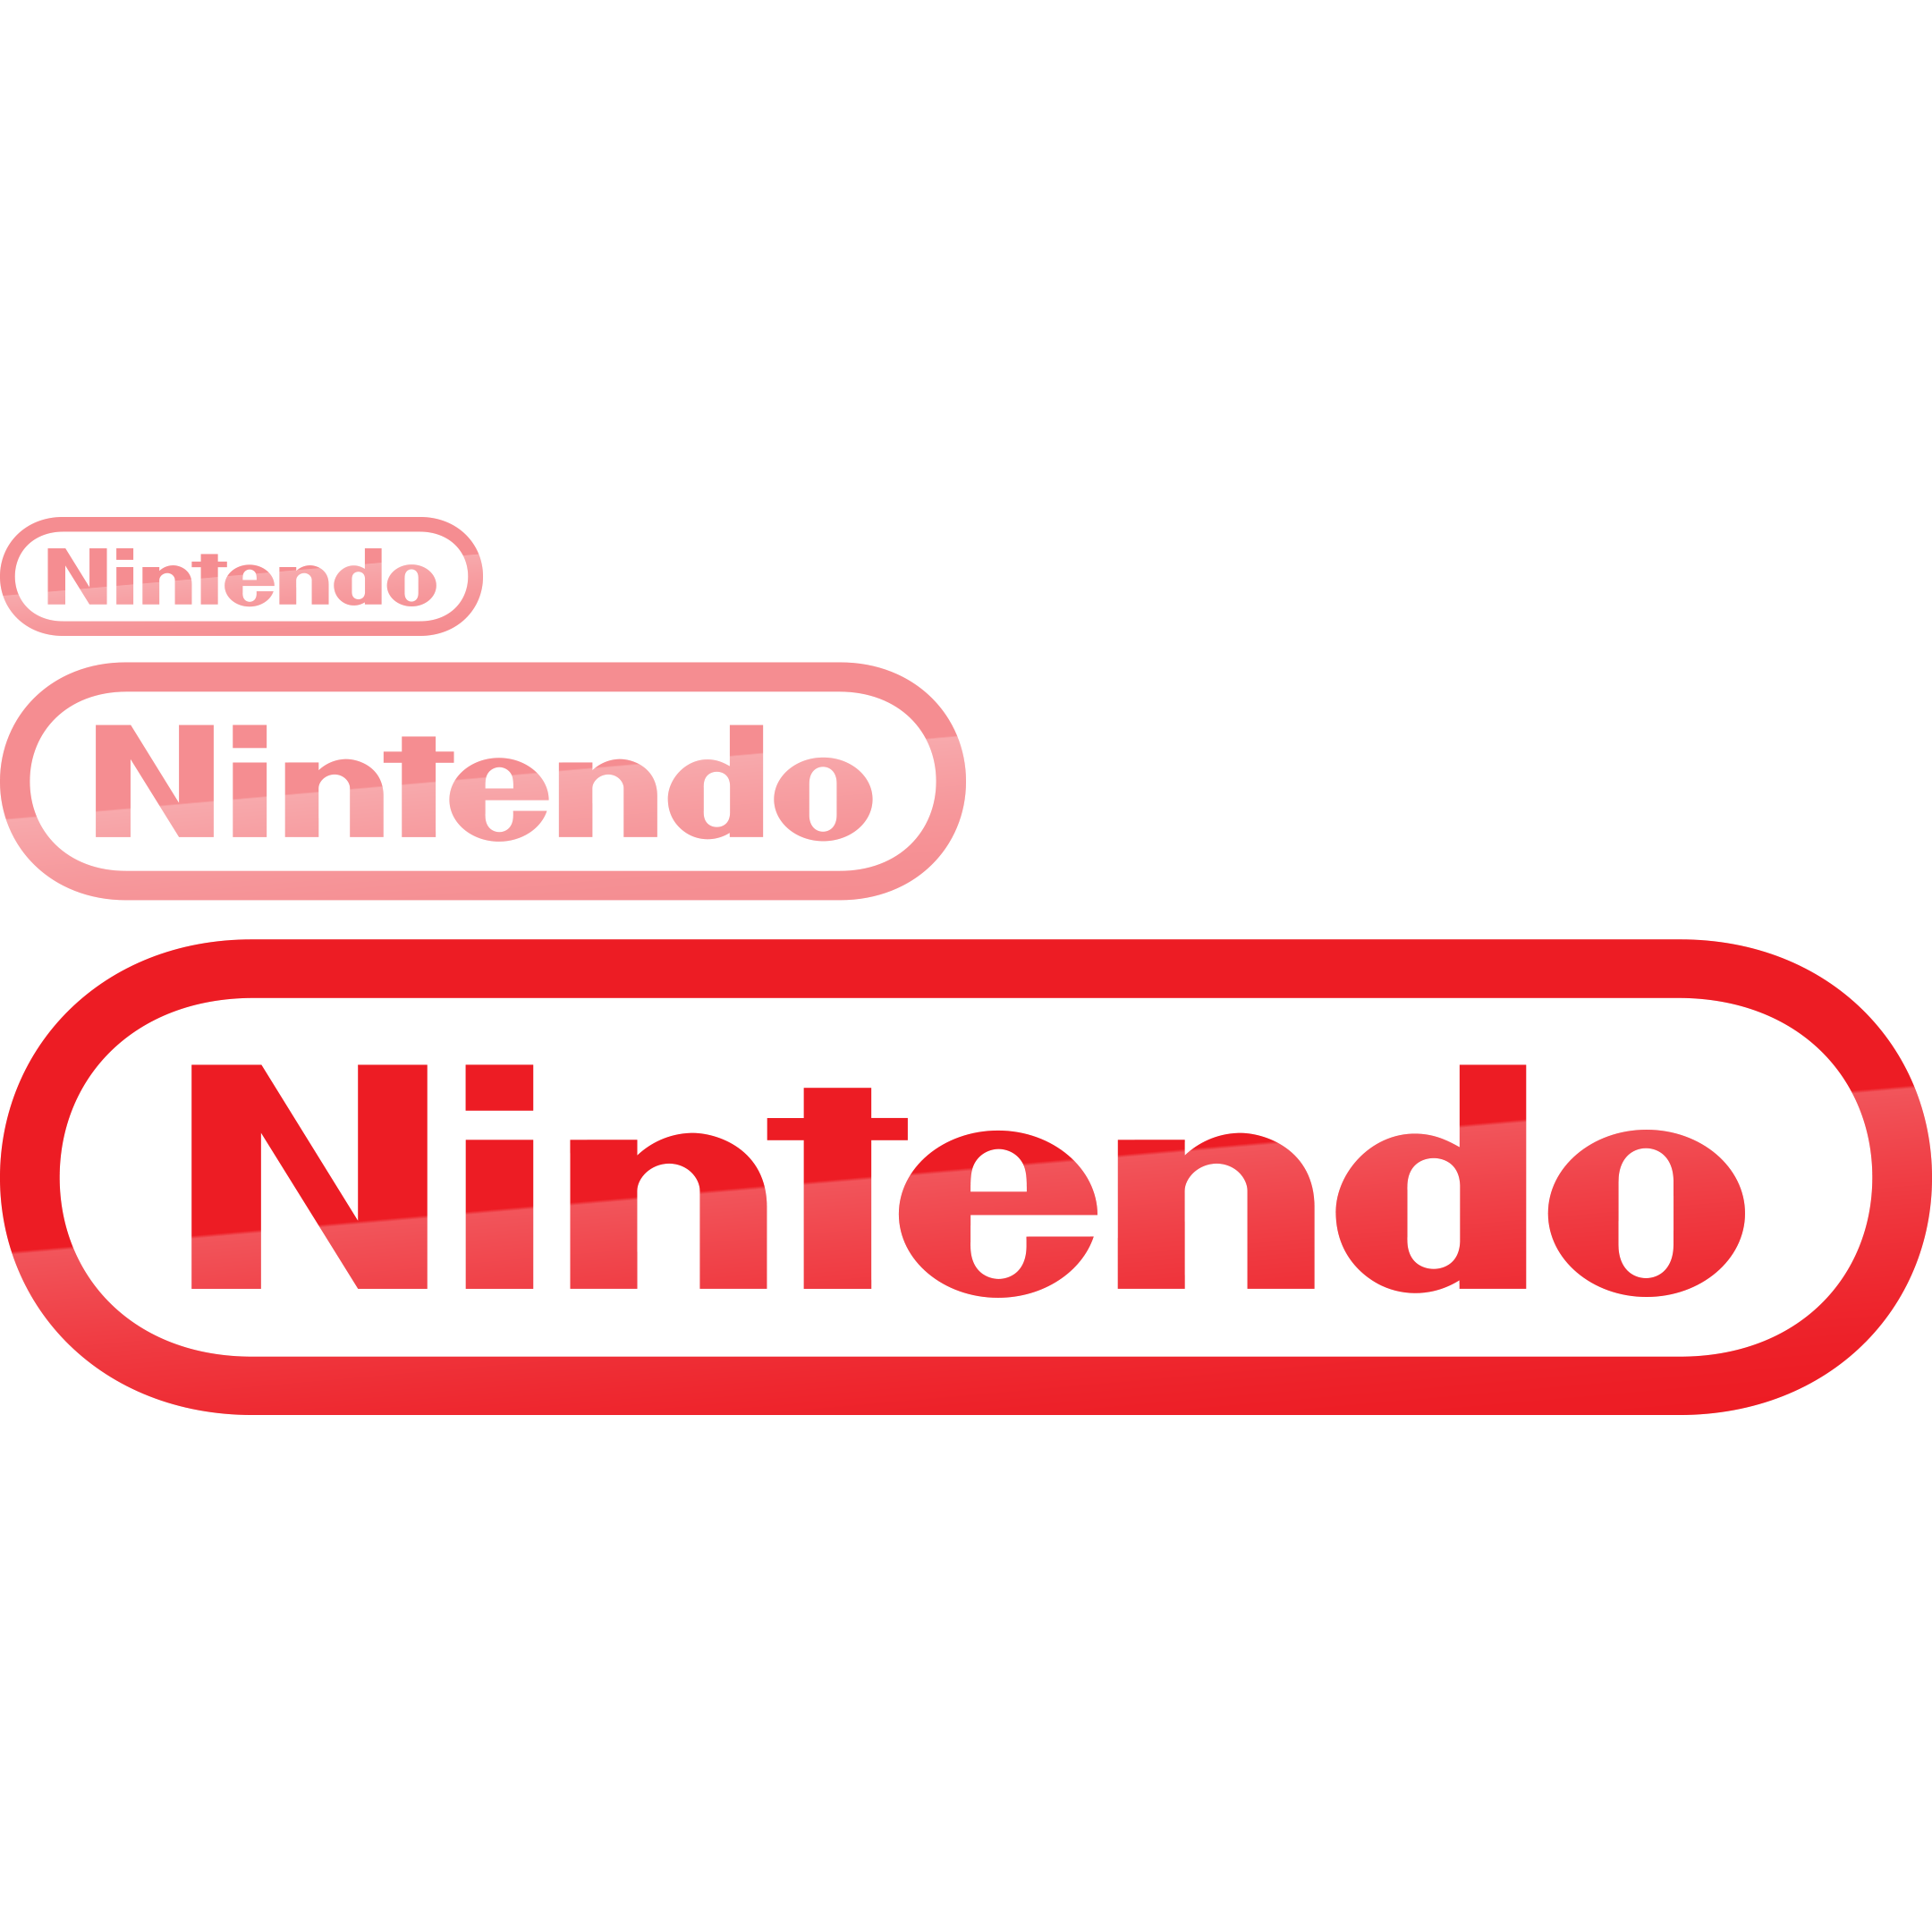 Logo nintendo png. Display signs rose colored